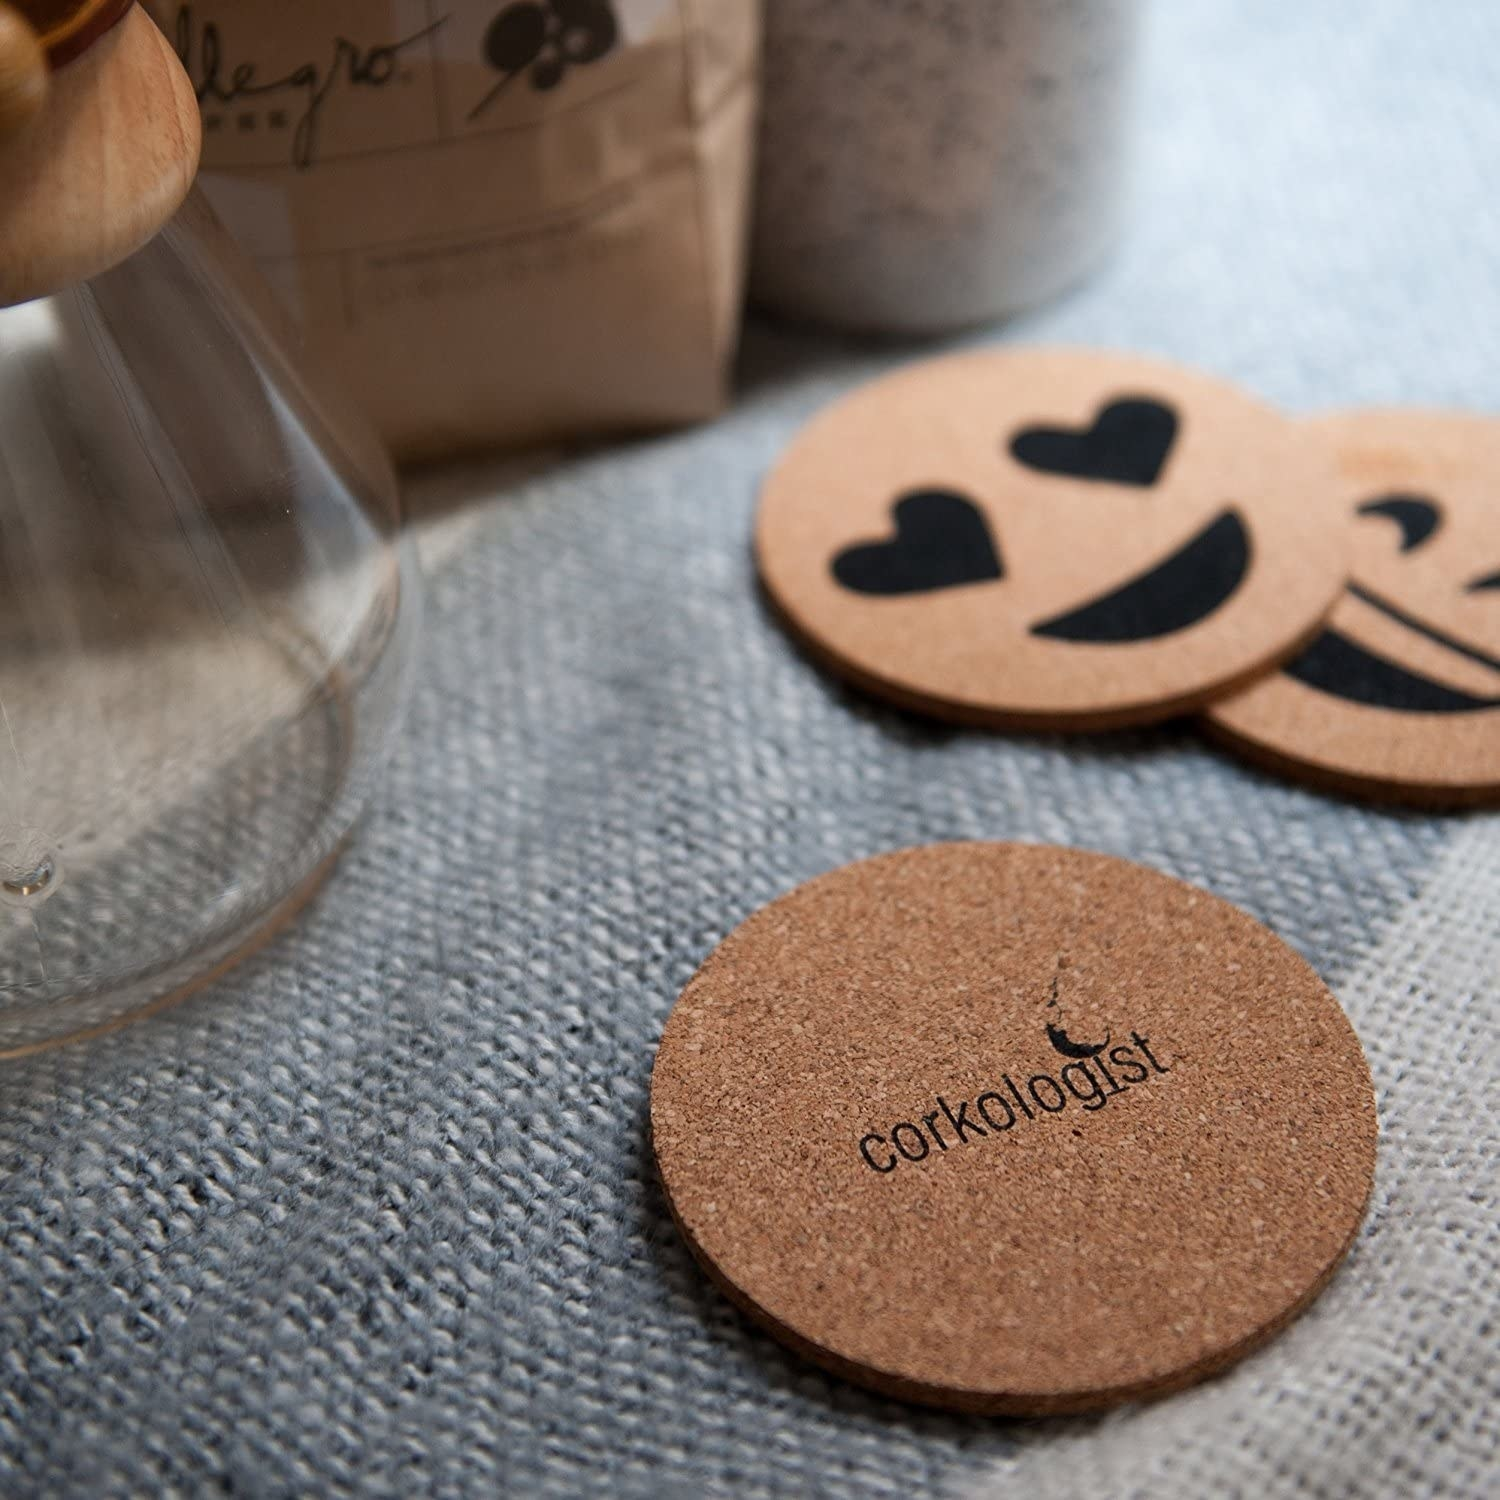 A close up of the emoji coasters on a tablecloth